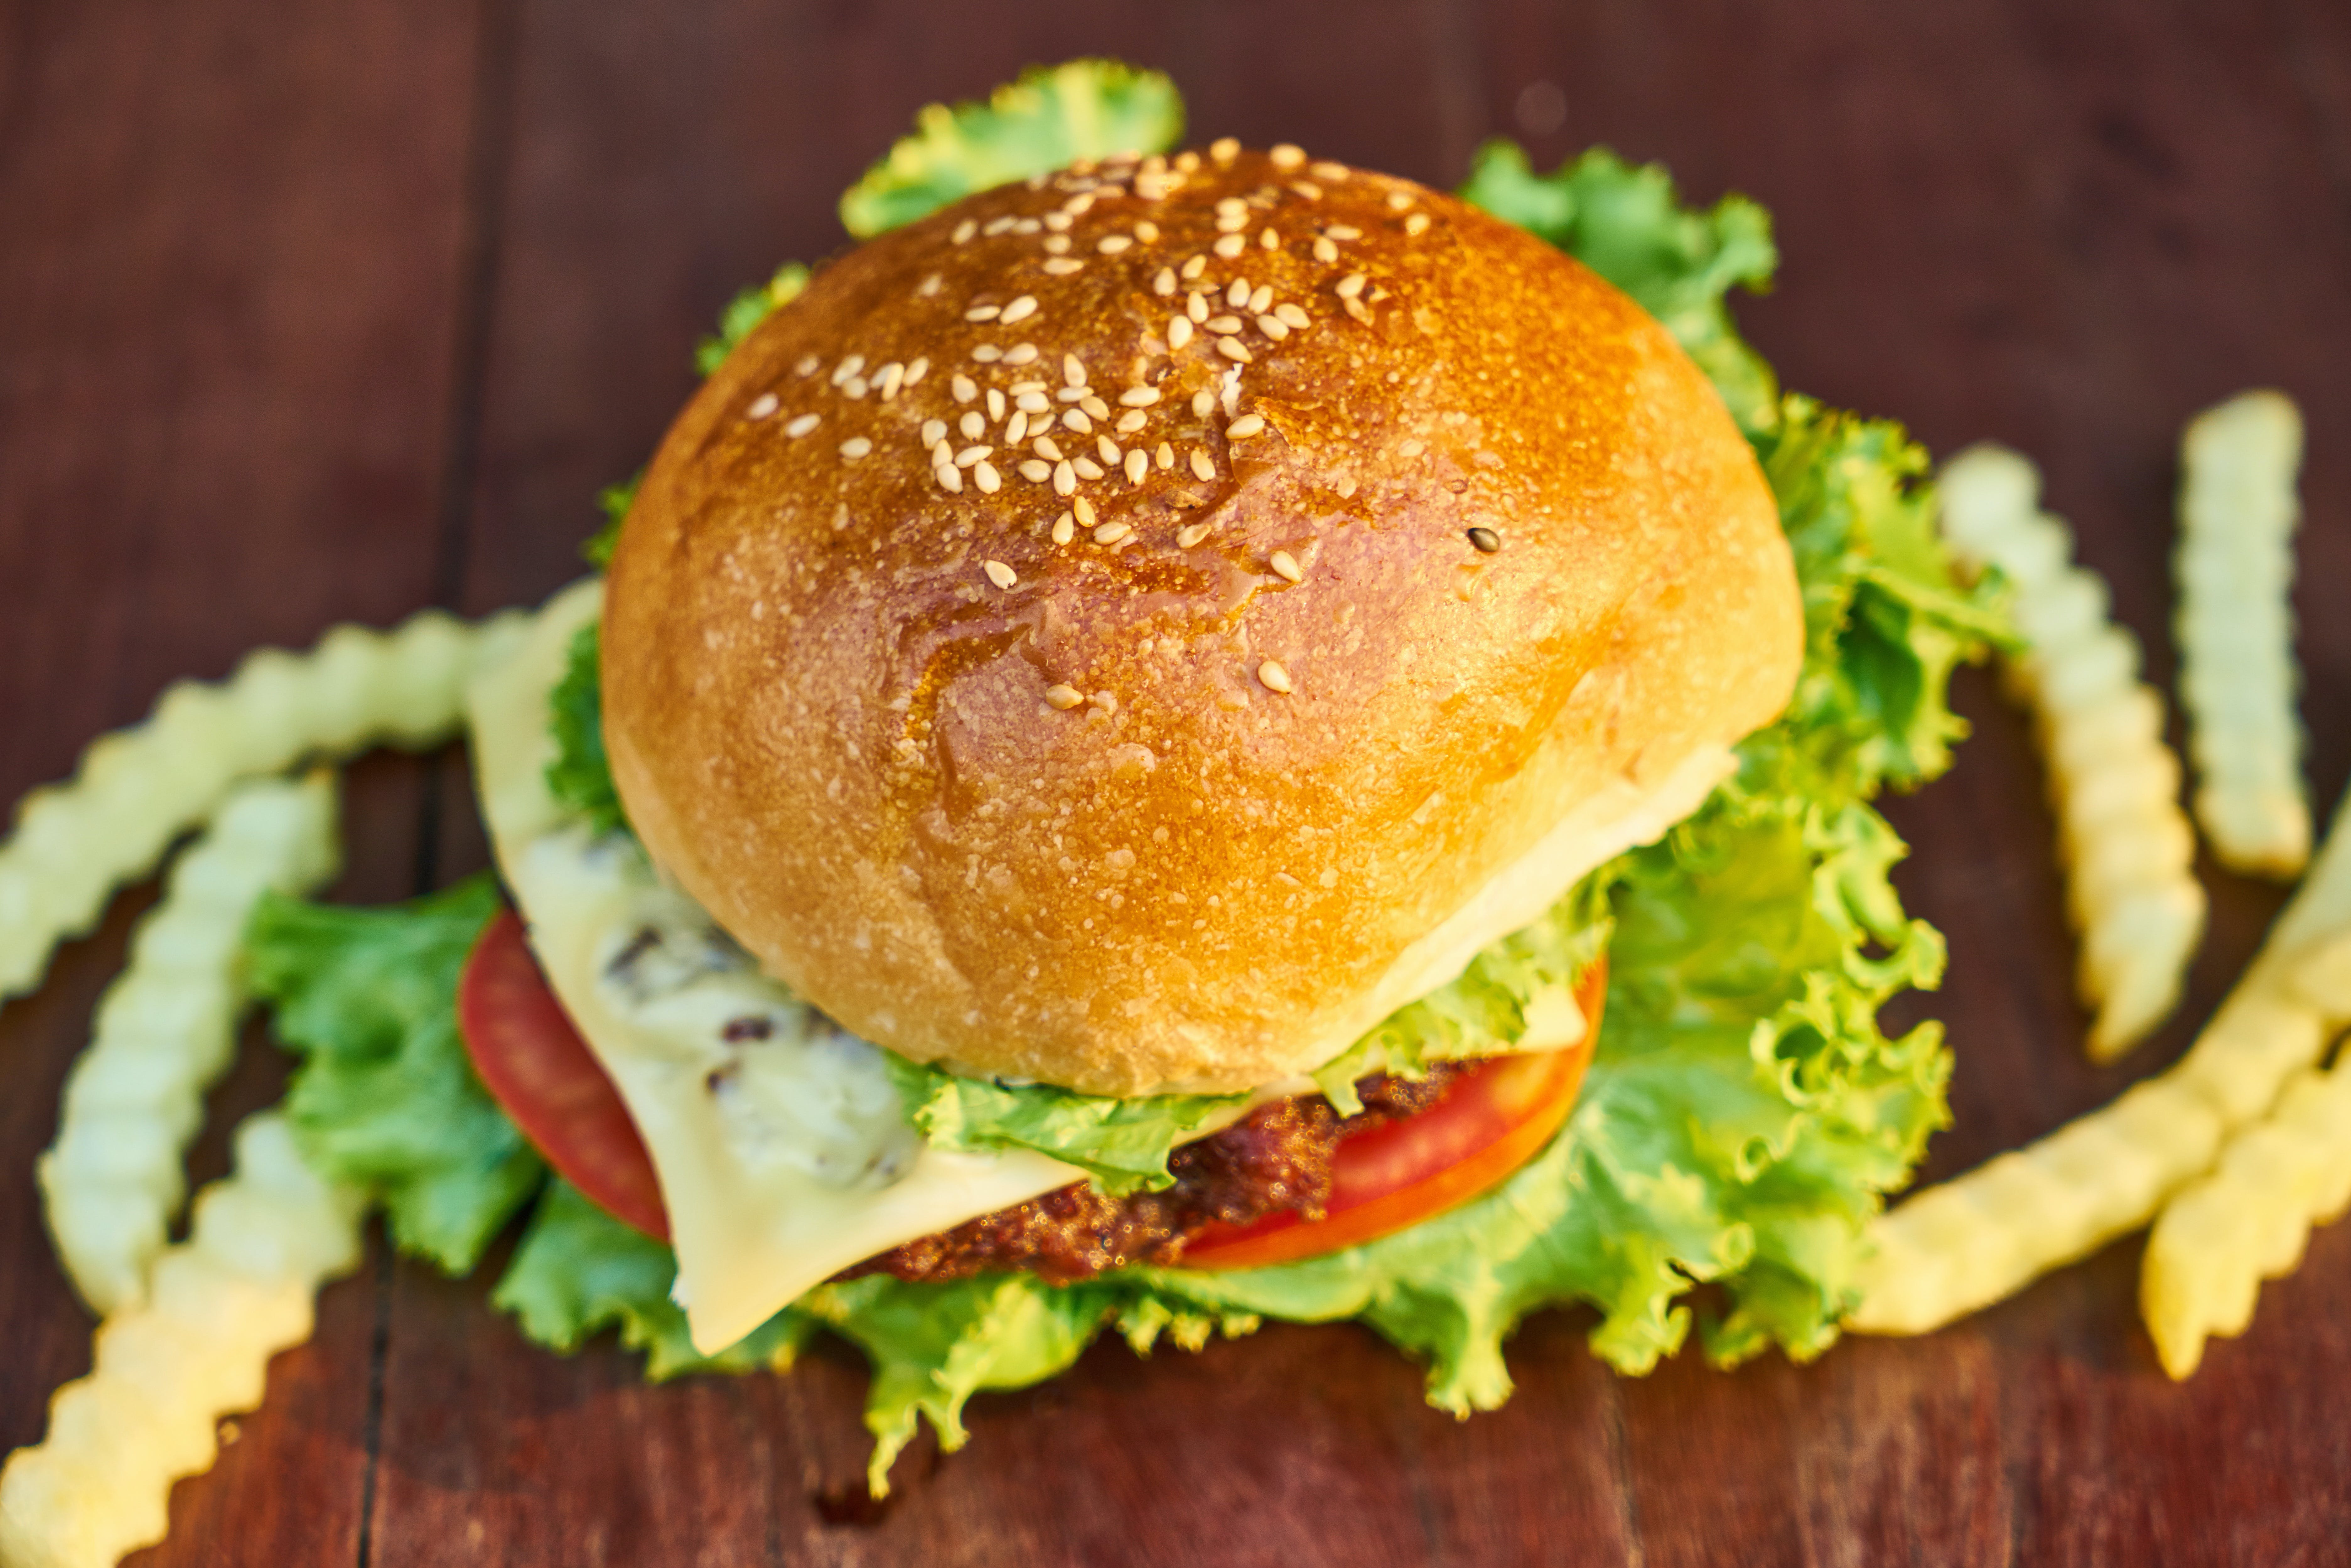 Cheese Burger With Lettuce